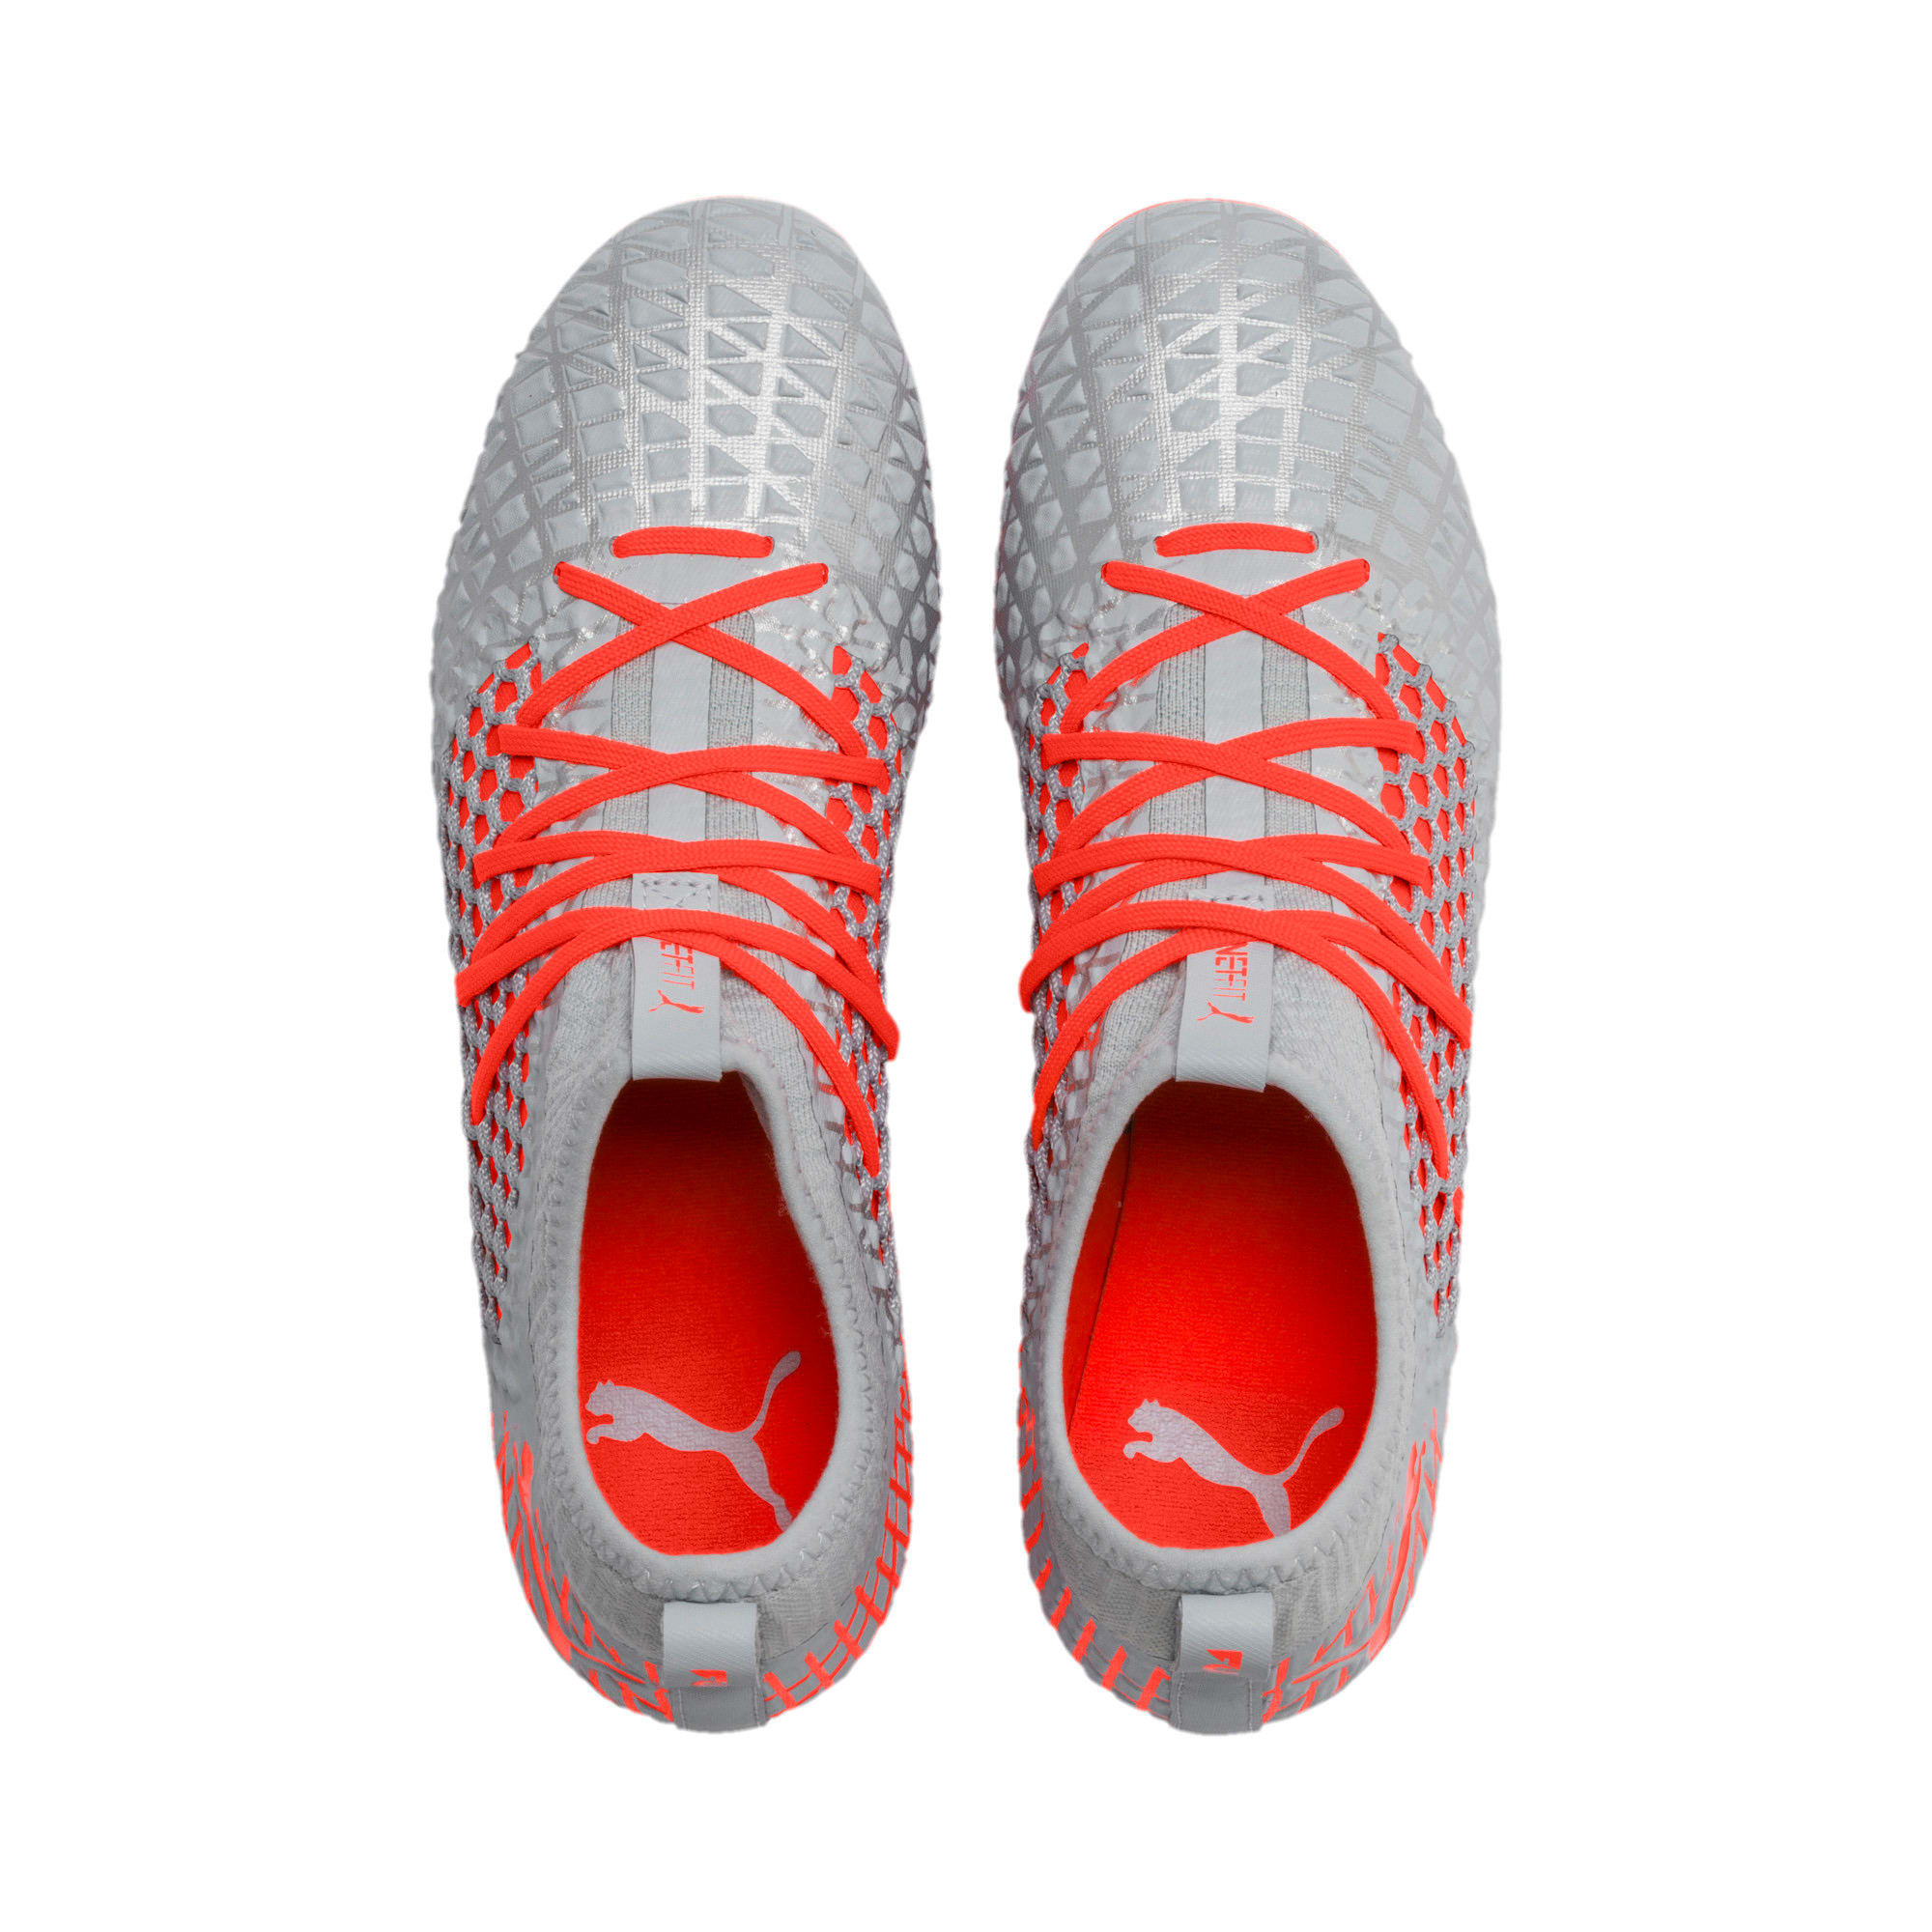 Thumbnail 7 of FUTURE 4.3 NETFIT FG/AG Men's Football Boots, Glacial Blue-Nrgy Red, medium-IND